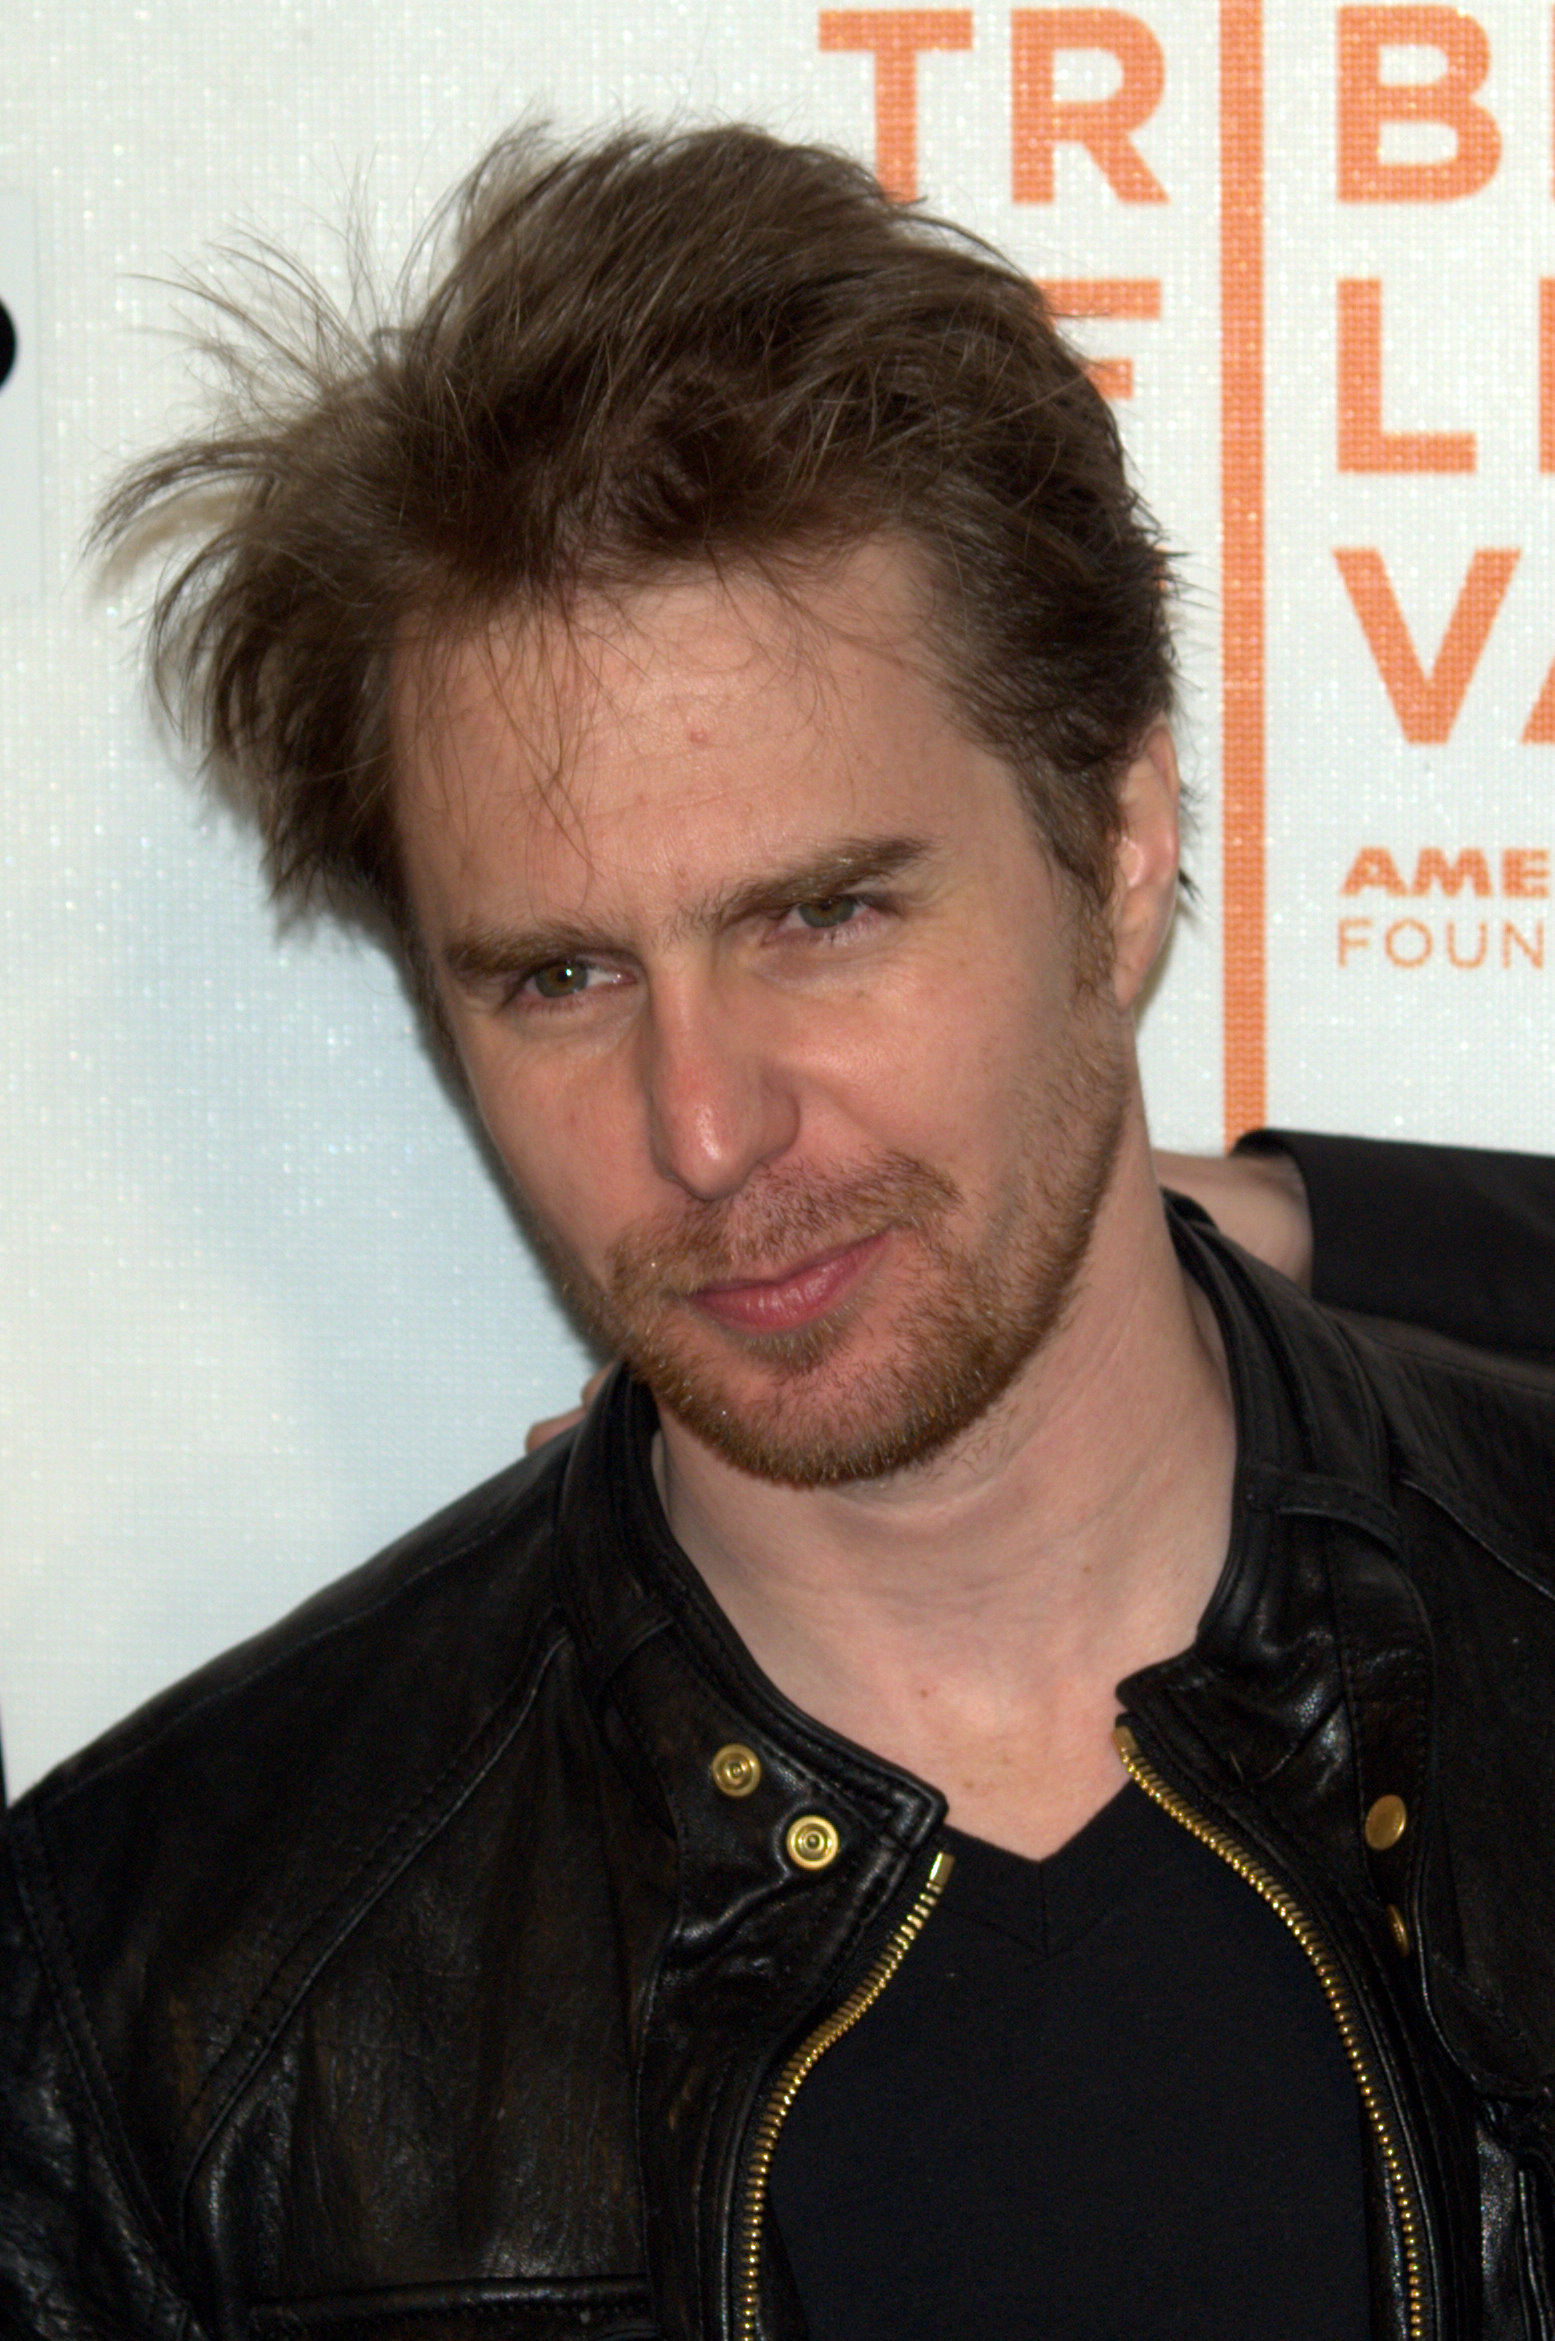 https://i2.wp.com/upload.wikimedia.org/wikipedia/commons/0/06/Sam_Rockwell_at_the_2009_Tribeca_Film_Festival.jpg